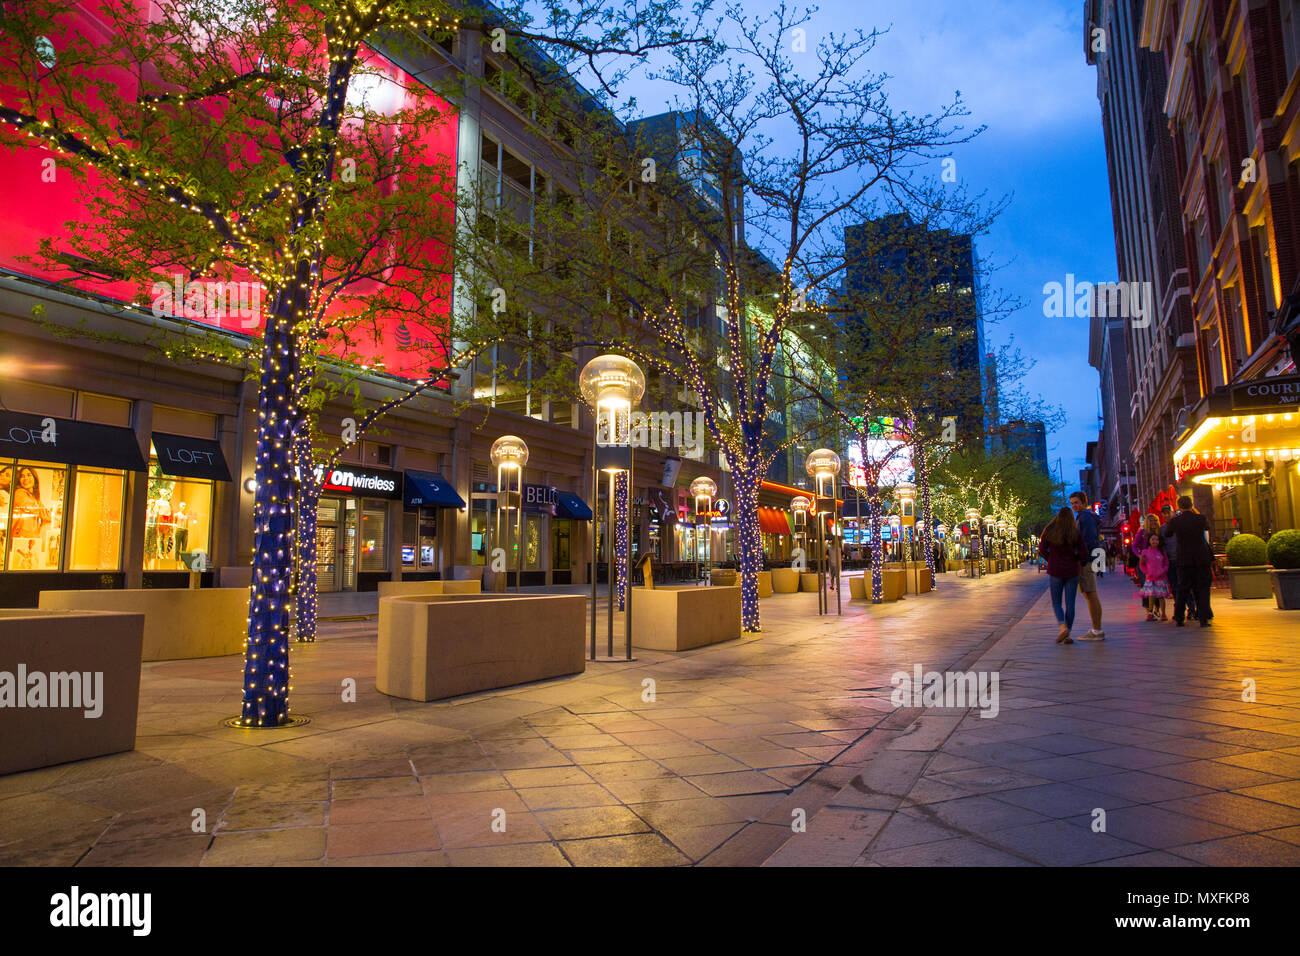 DENVER, COLORADO - MAY 1, 2018: Street scene along the 16th Street Mall in downtown Denver Colorado at night with lights and people in view - Image - Stock Image